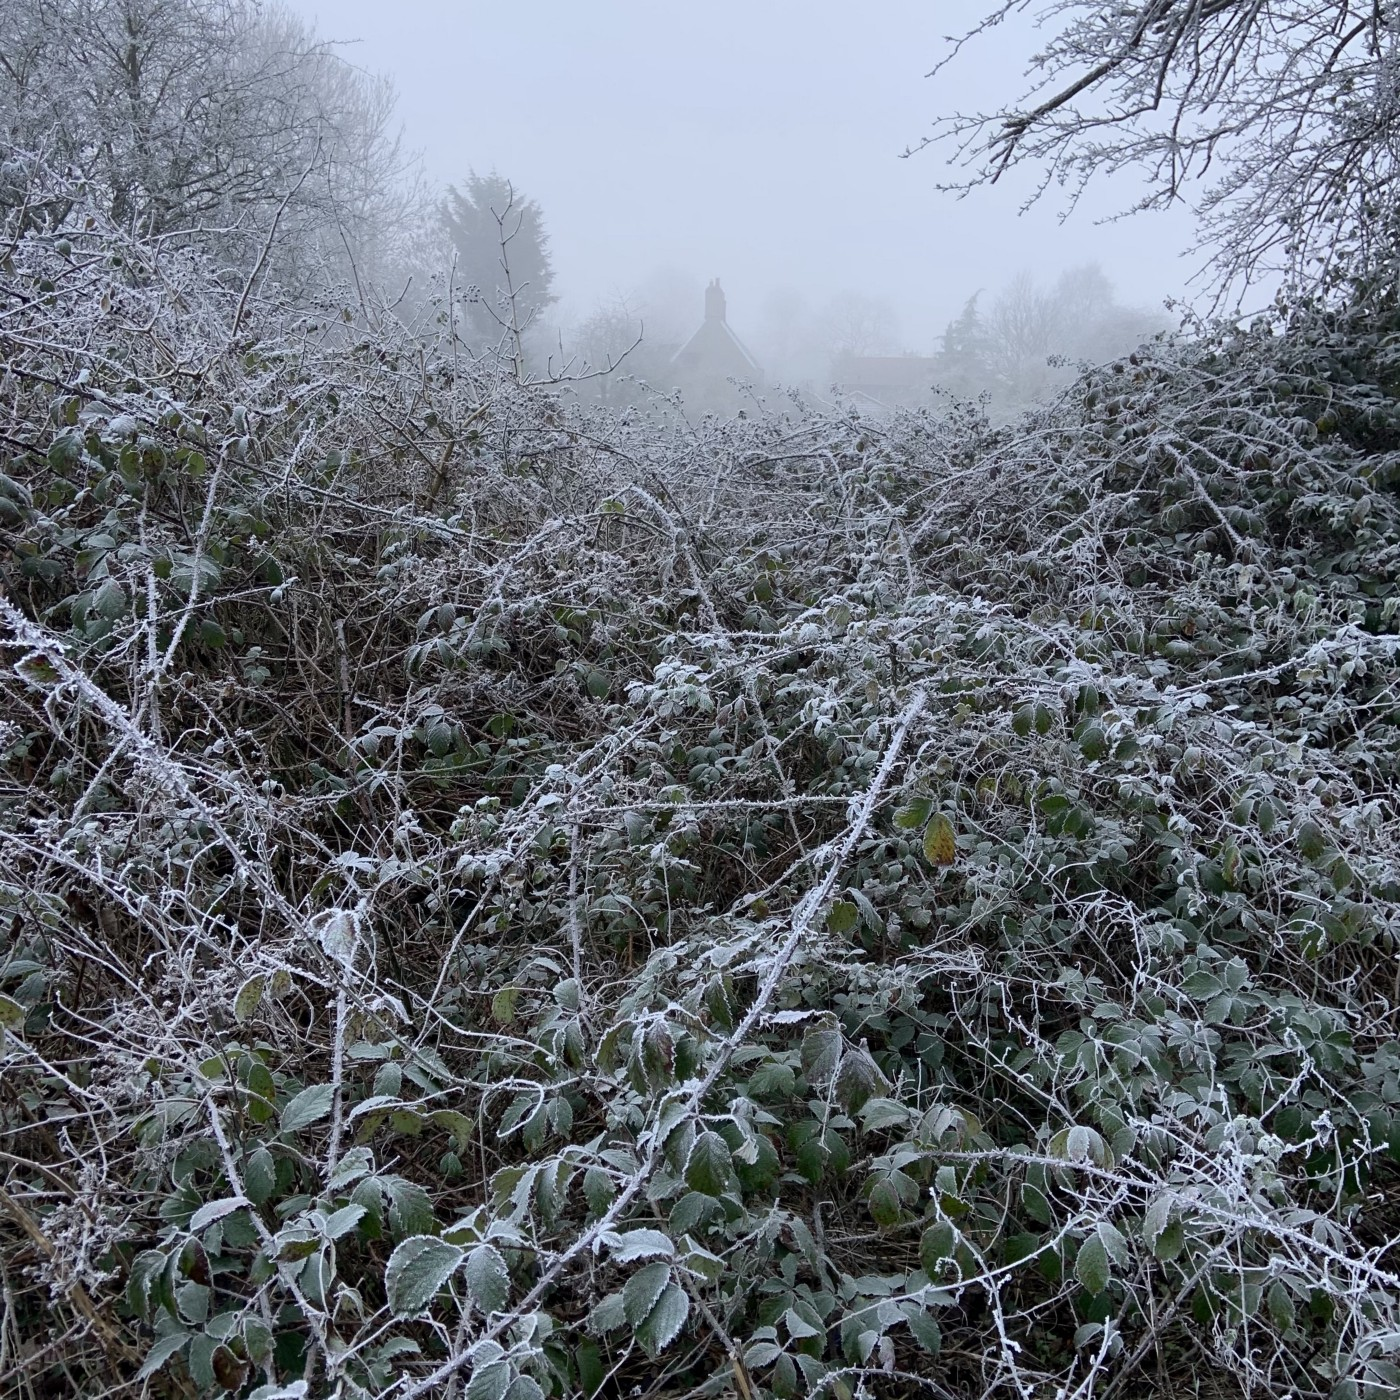 Frosty hedgerow with houses in the distance